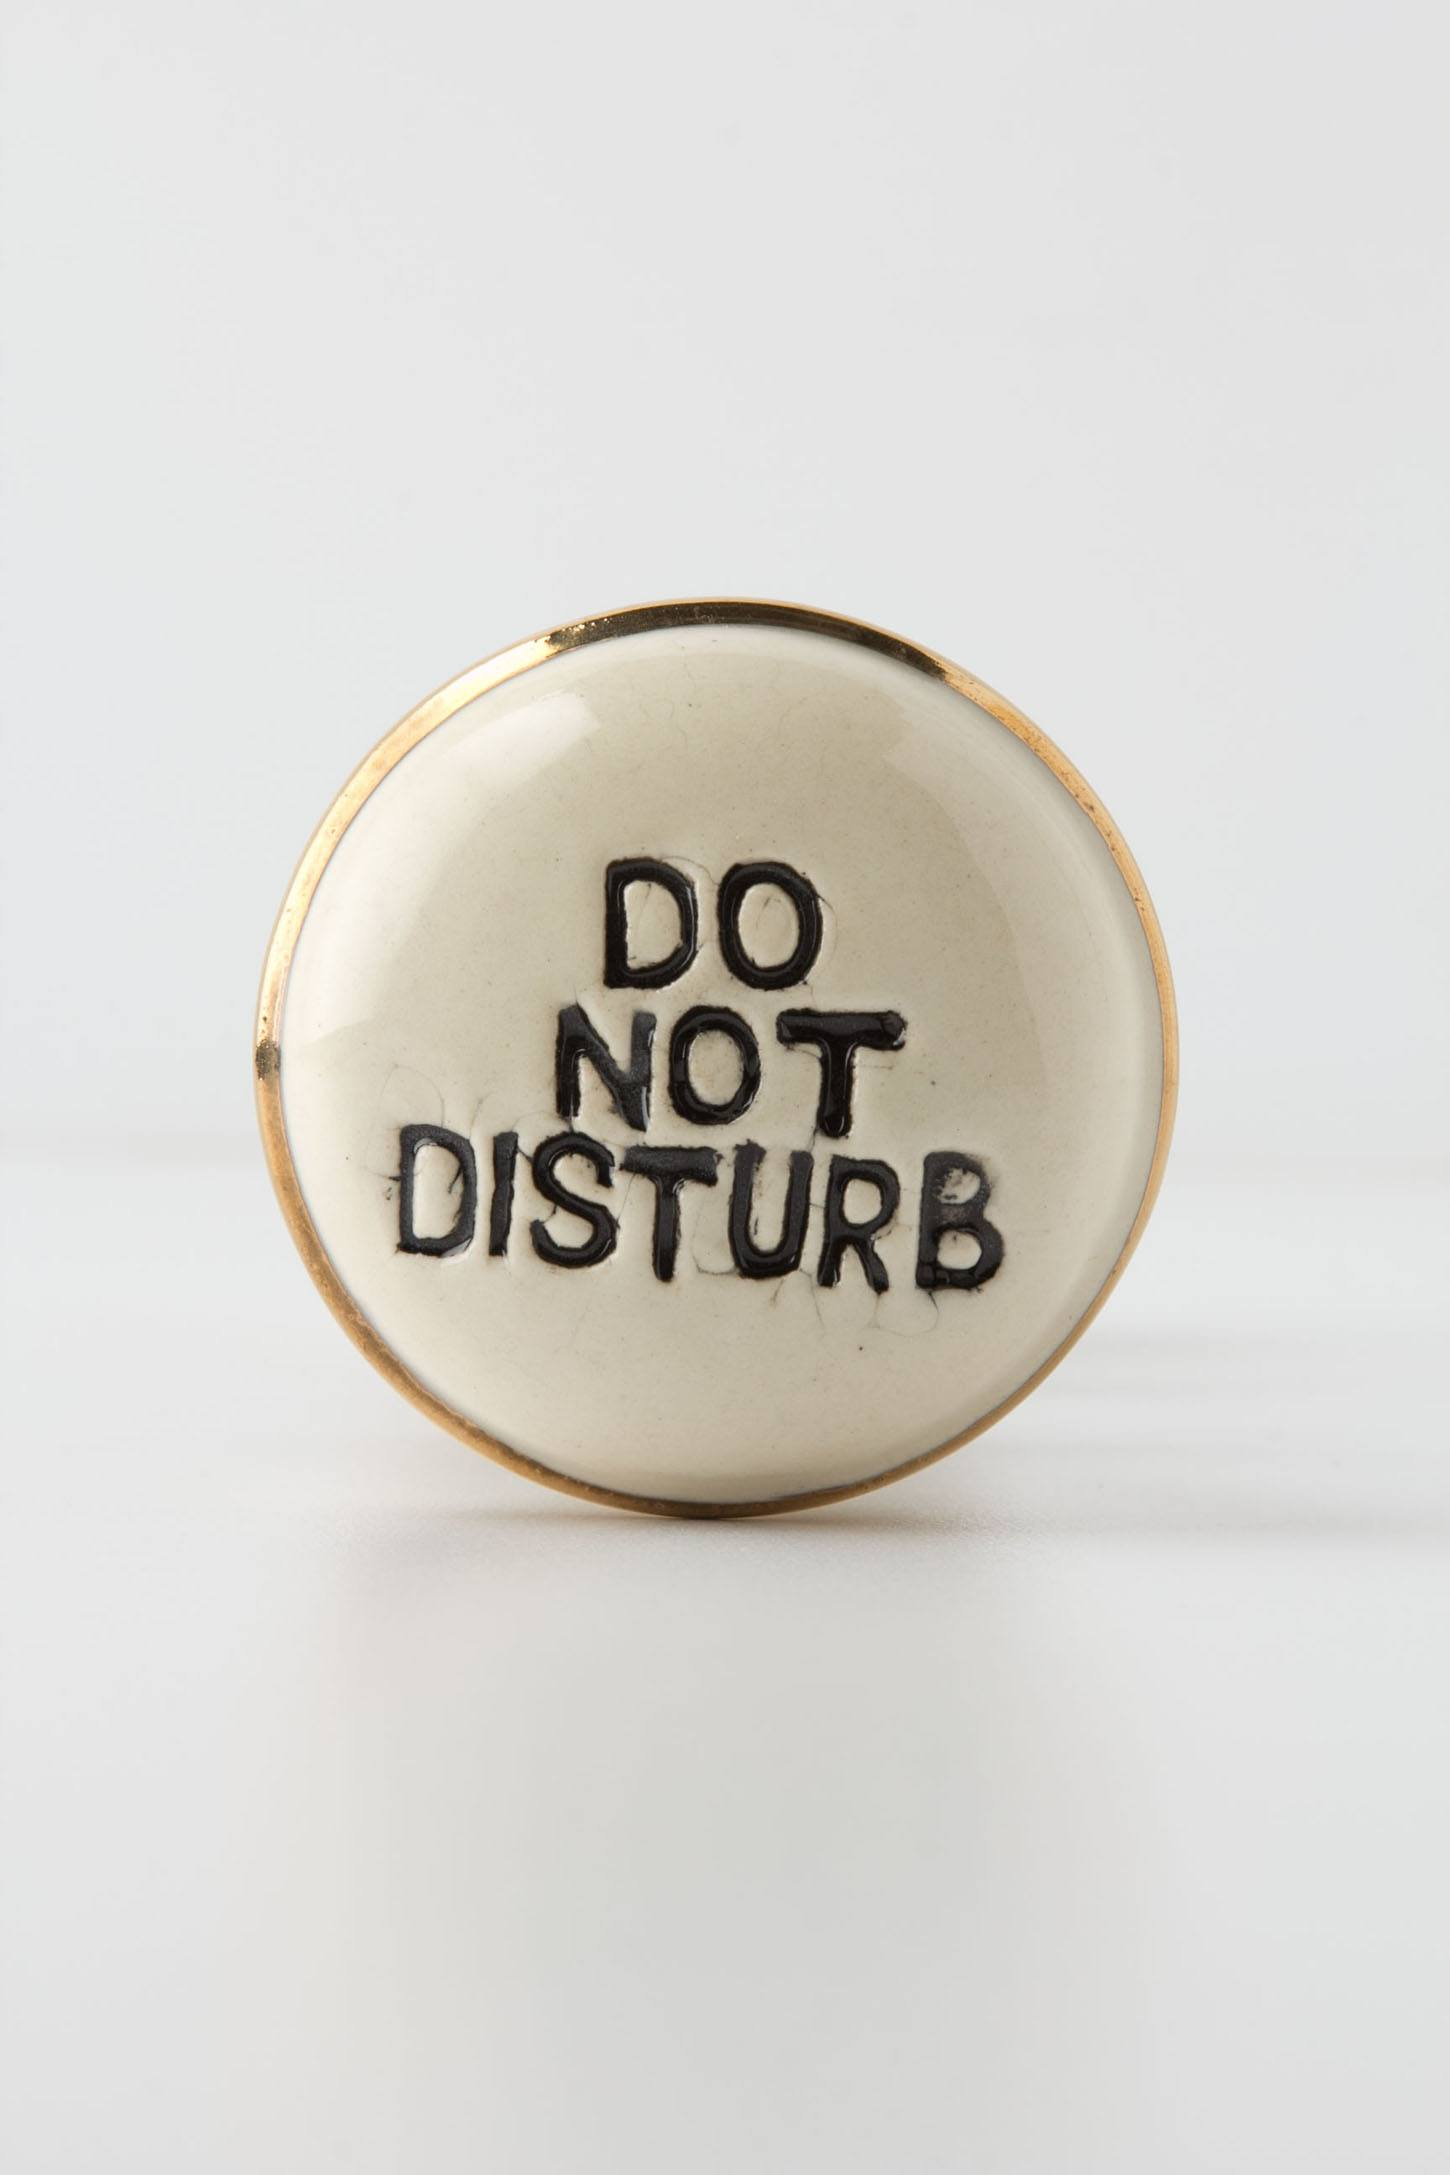 Do Not Disturb Doorknob